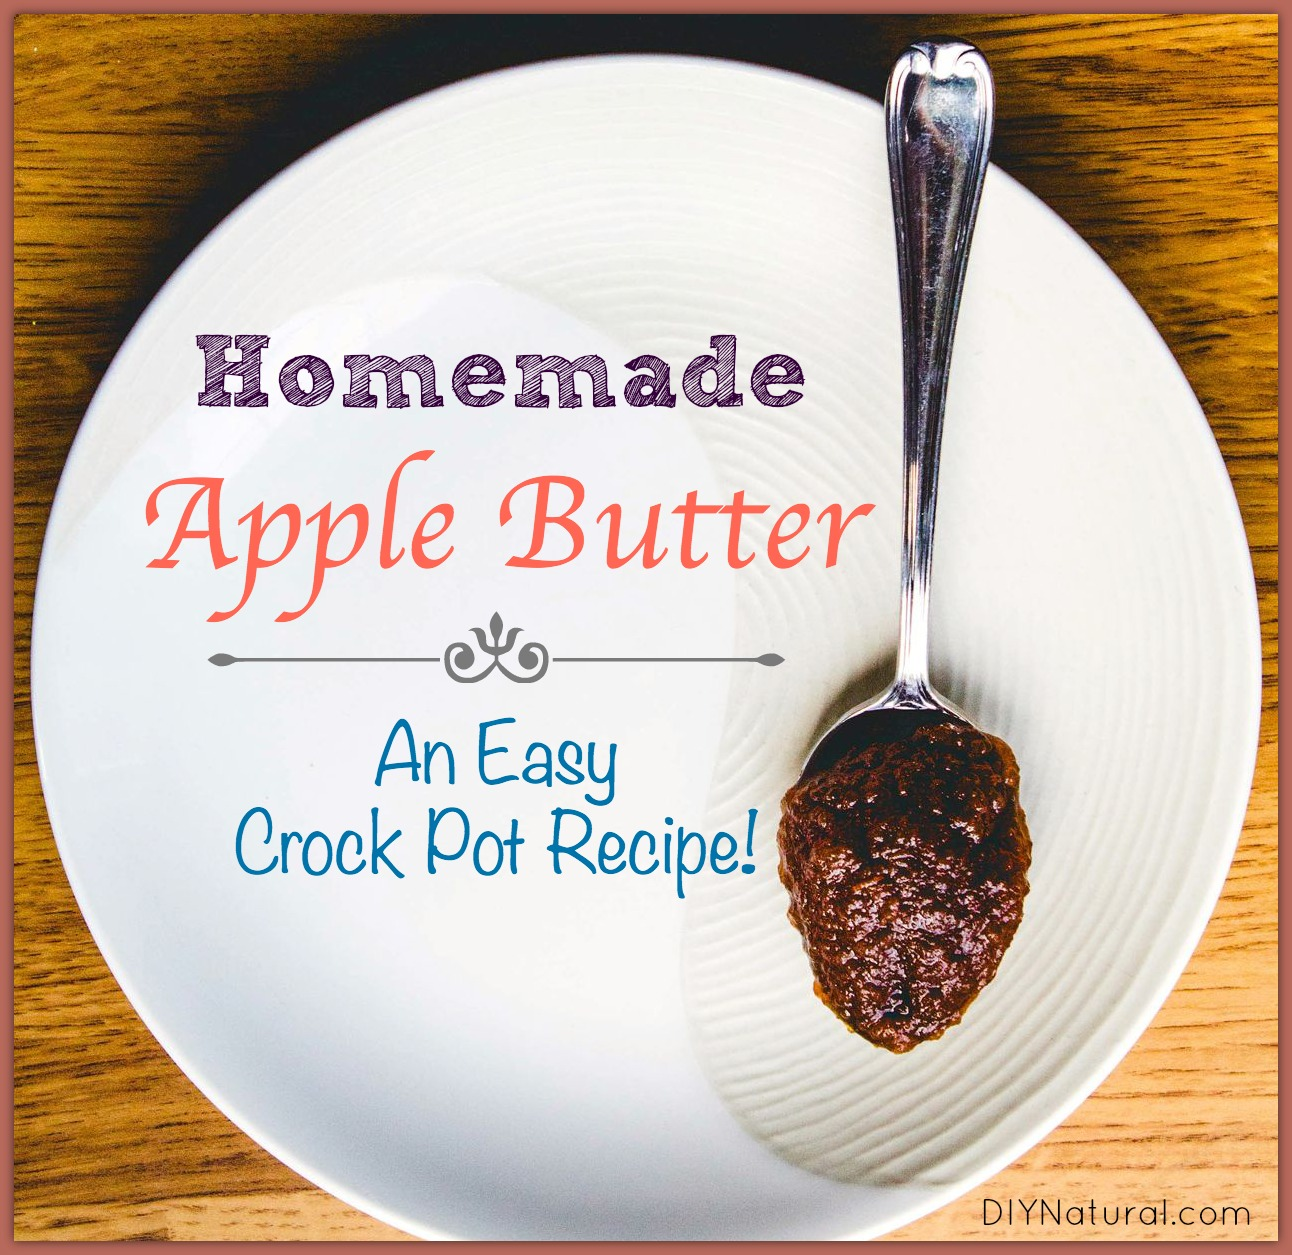 Delicious Apple Butter Recipe for Your Crock Pot